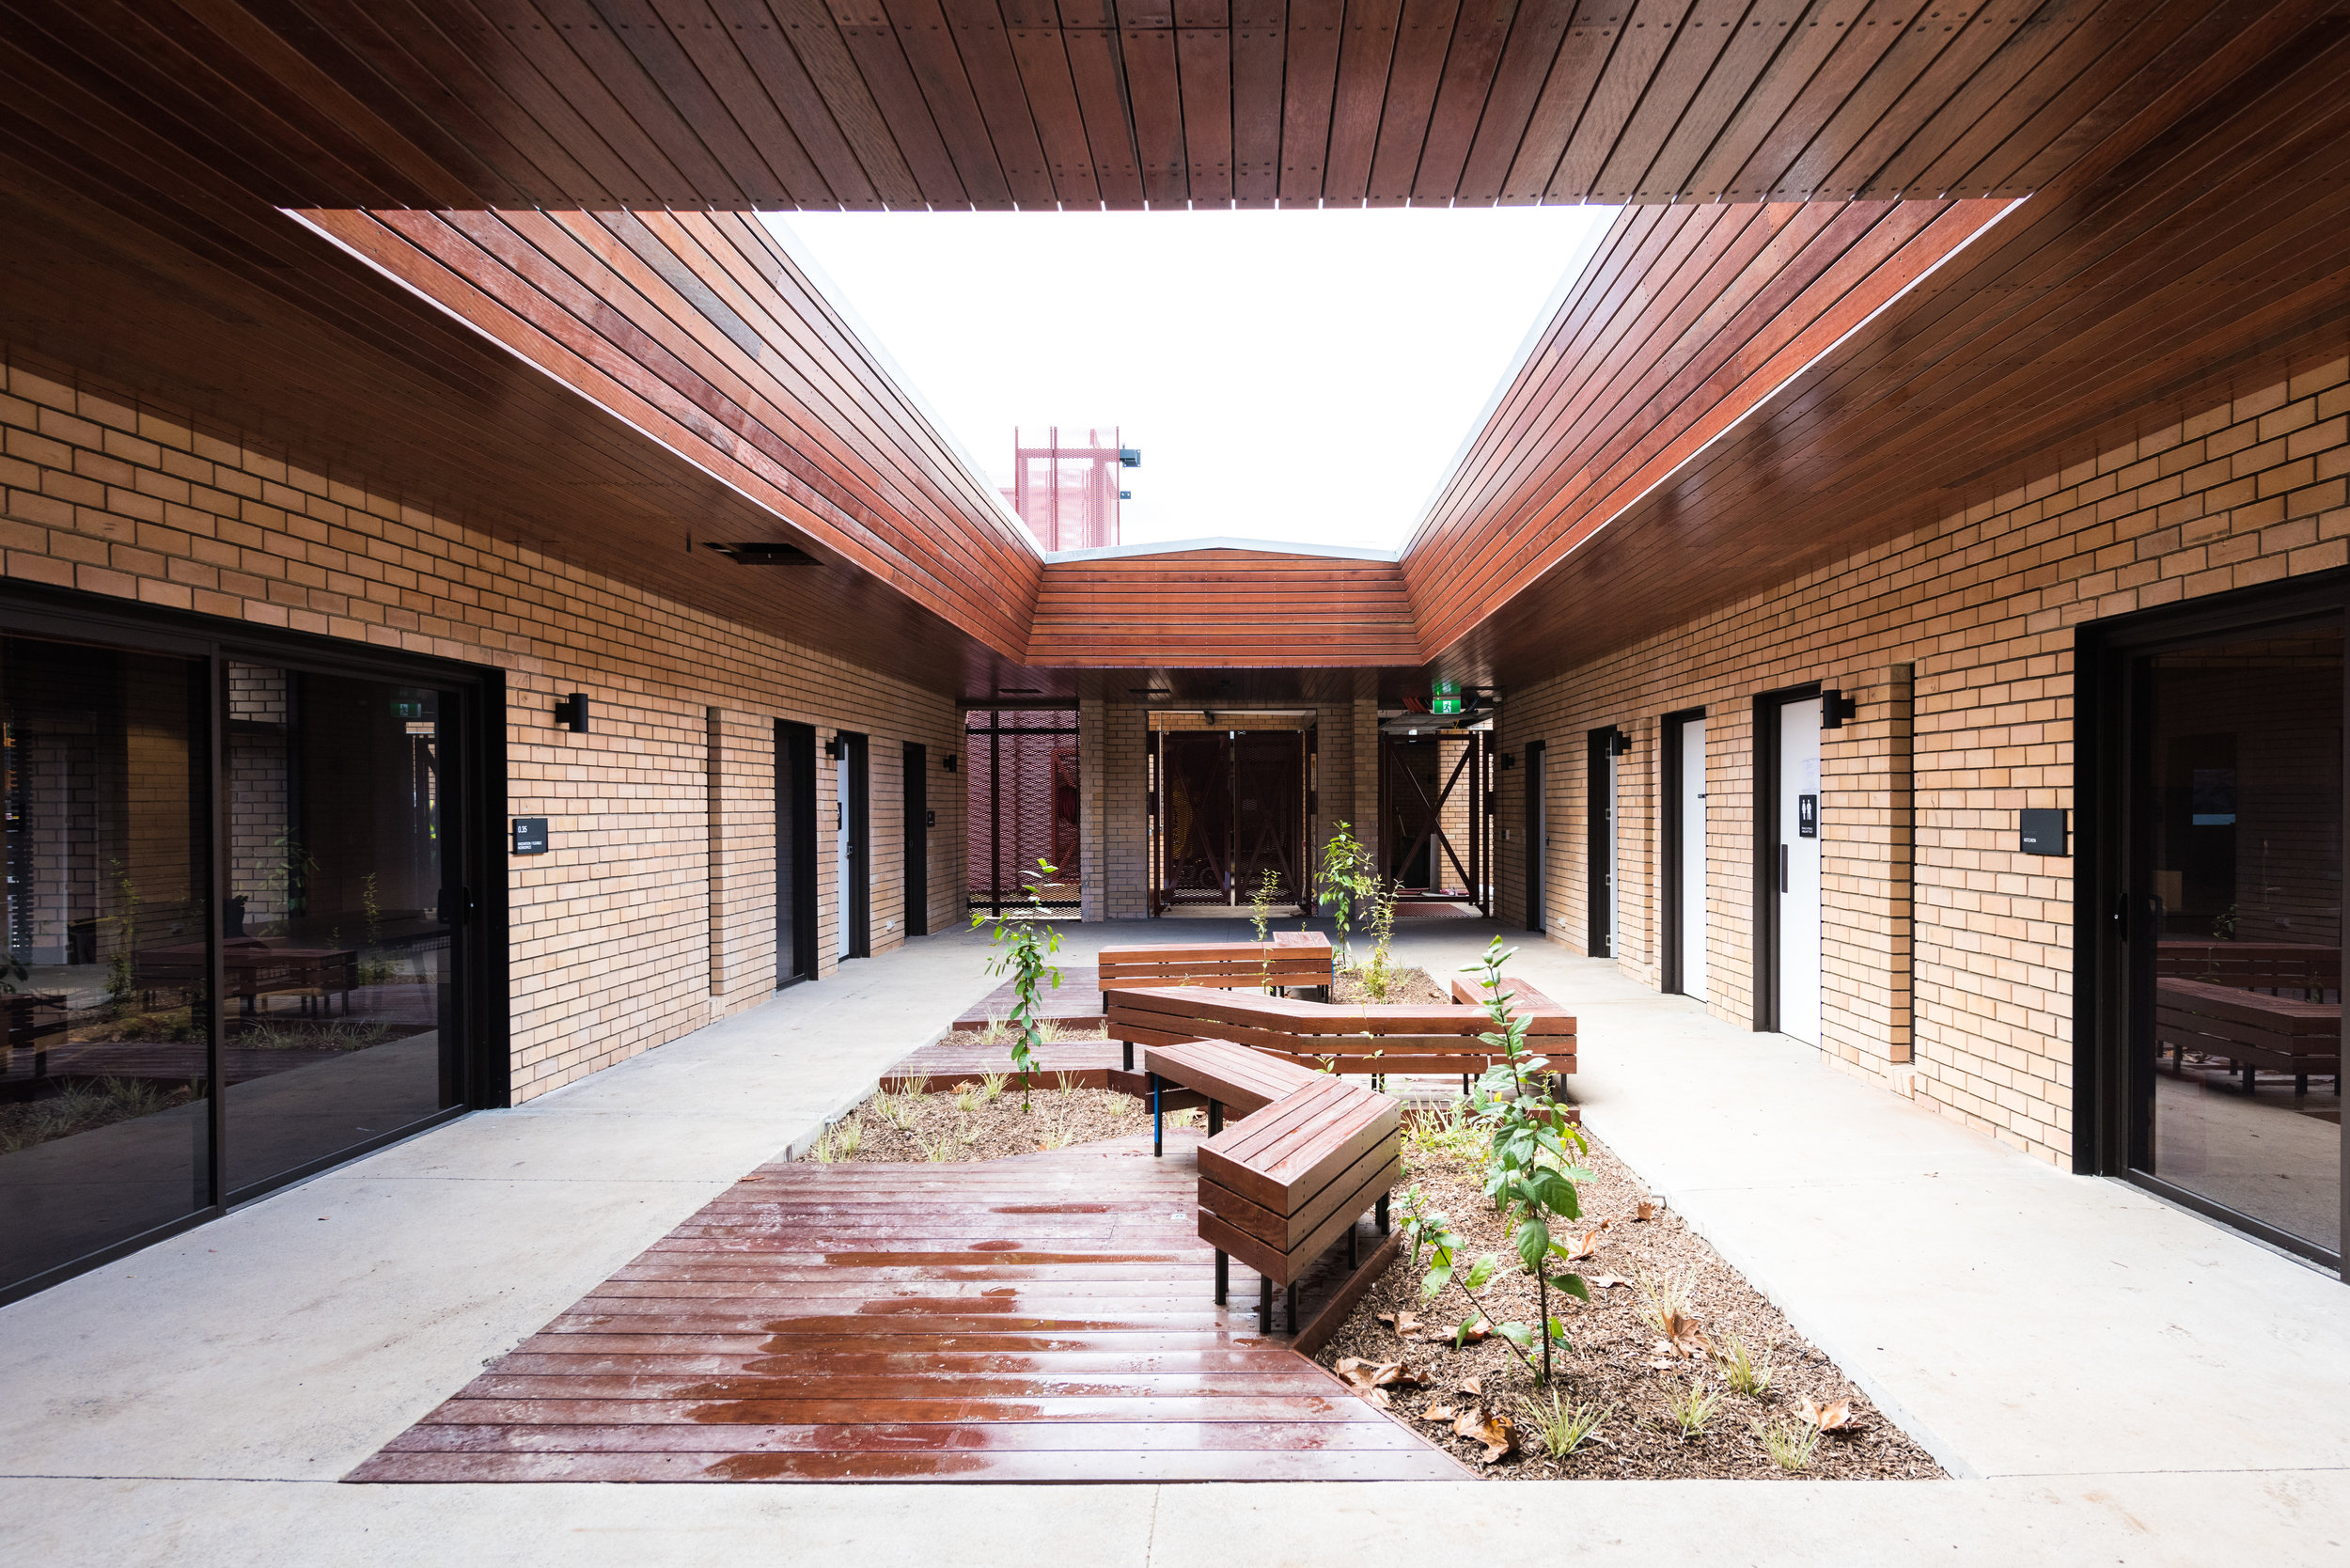 Kimberwalli Centre, Aboriginal Centre for Excellence   Adaptive Reuse Project